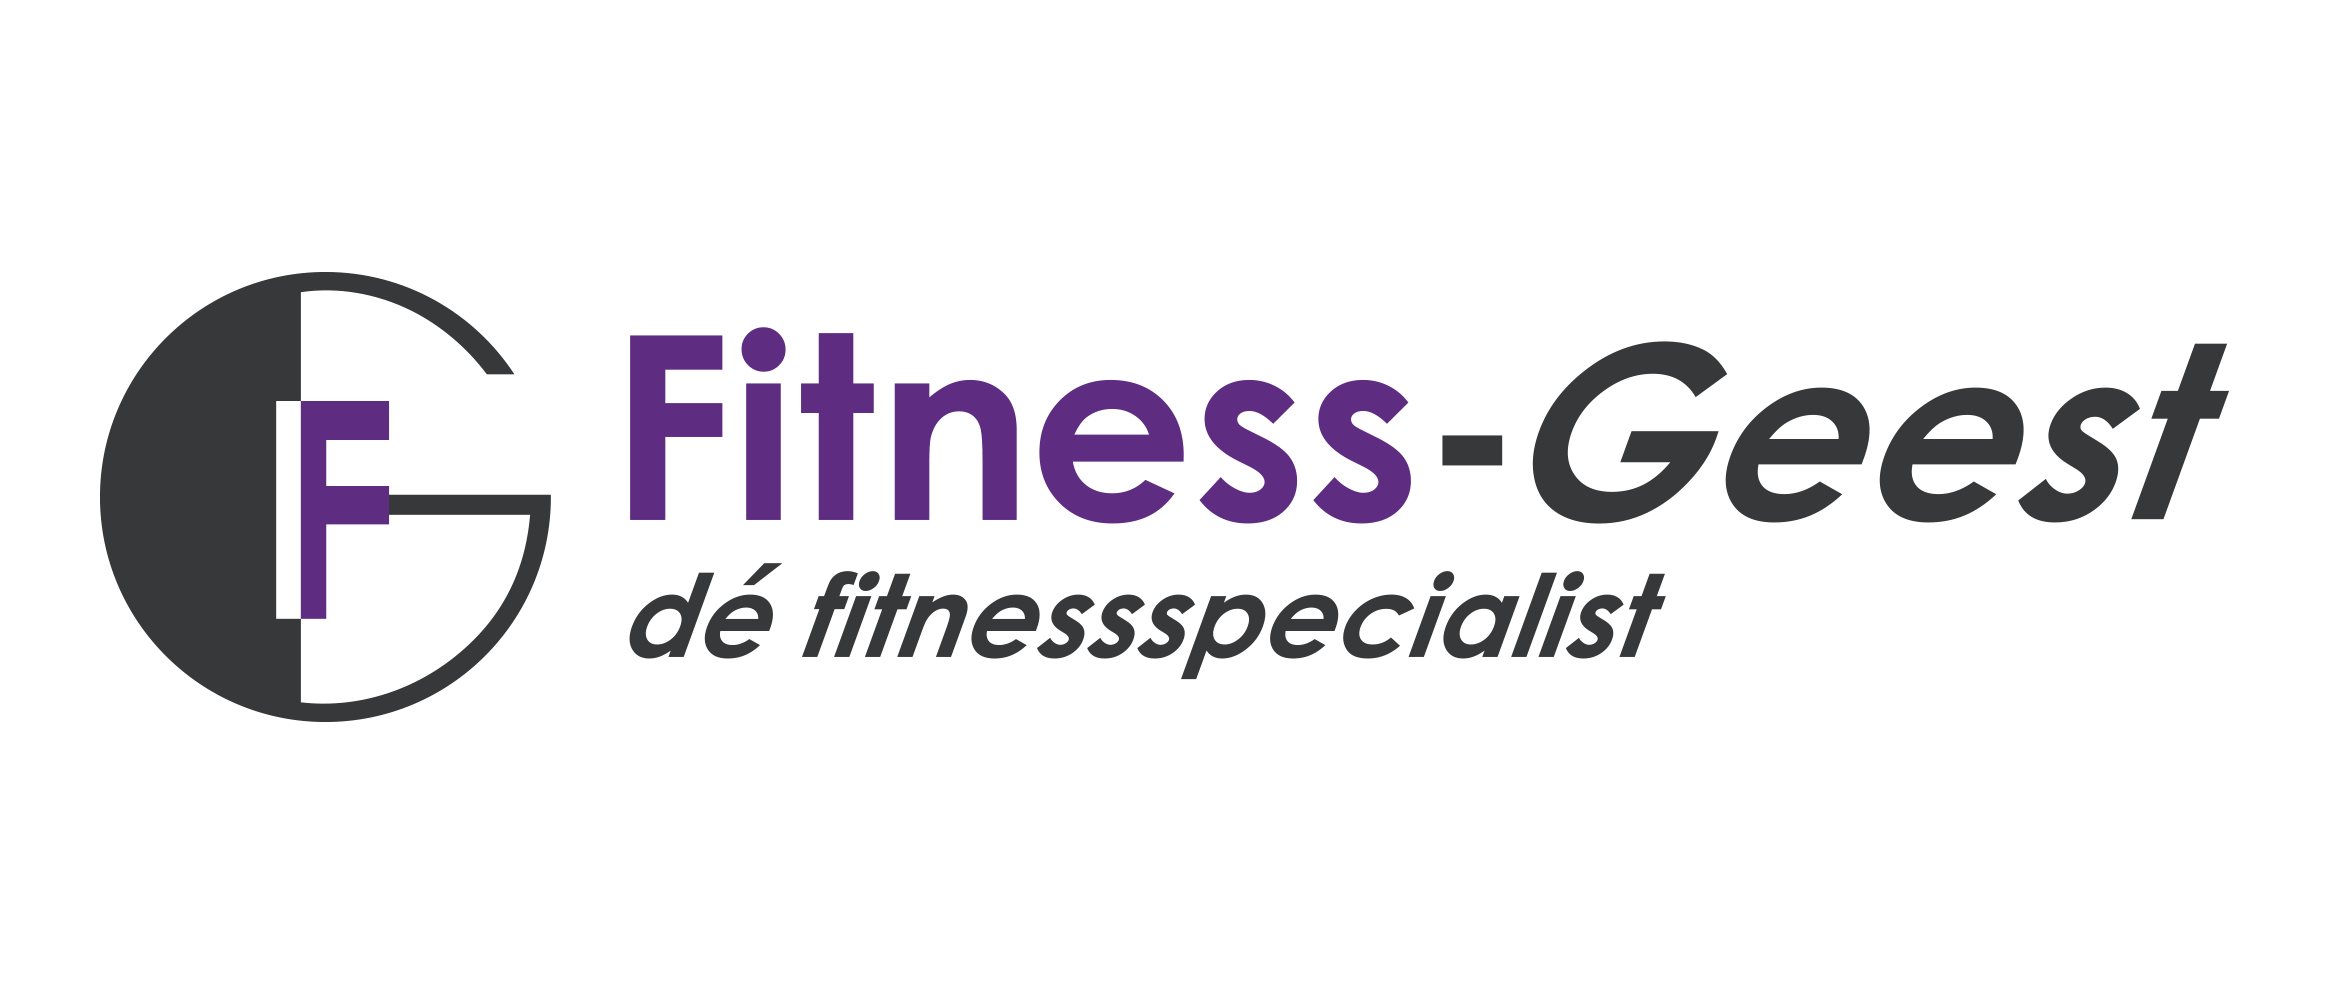 Fitness-Geest.nl